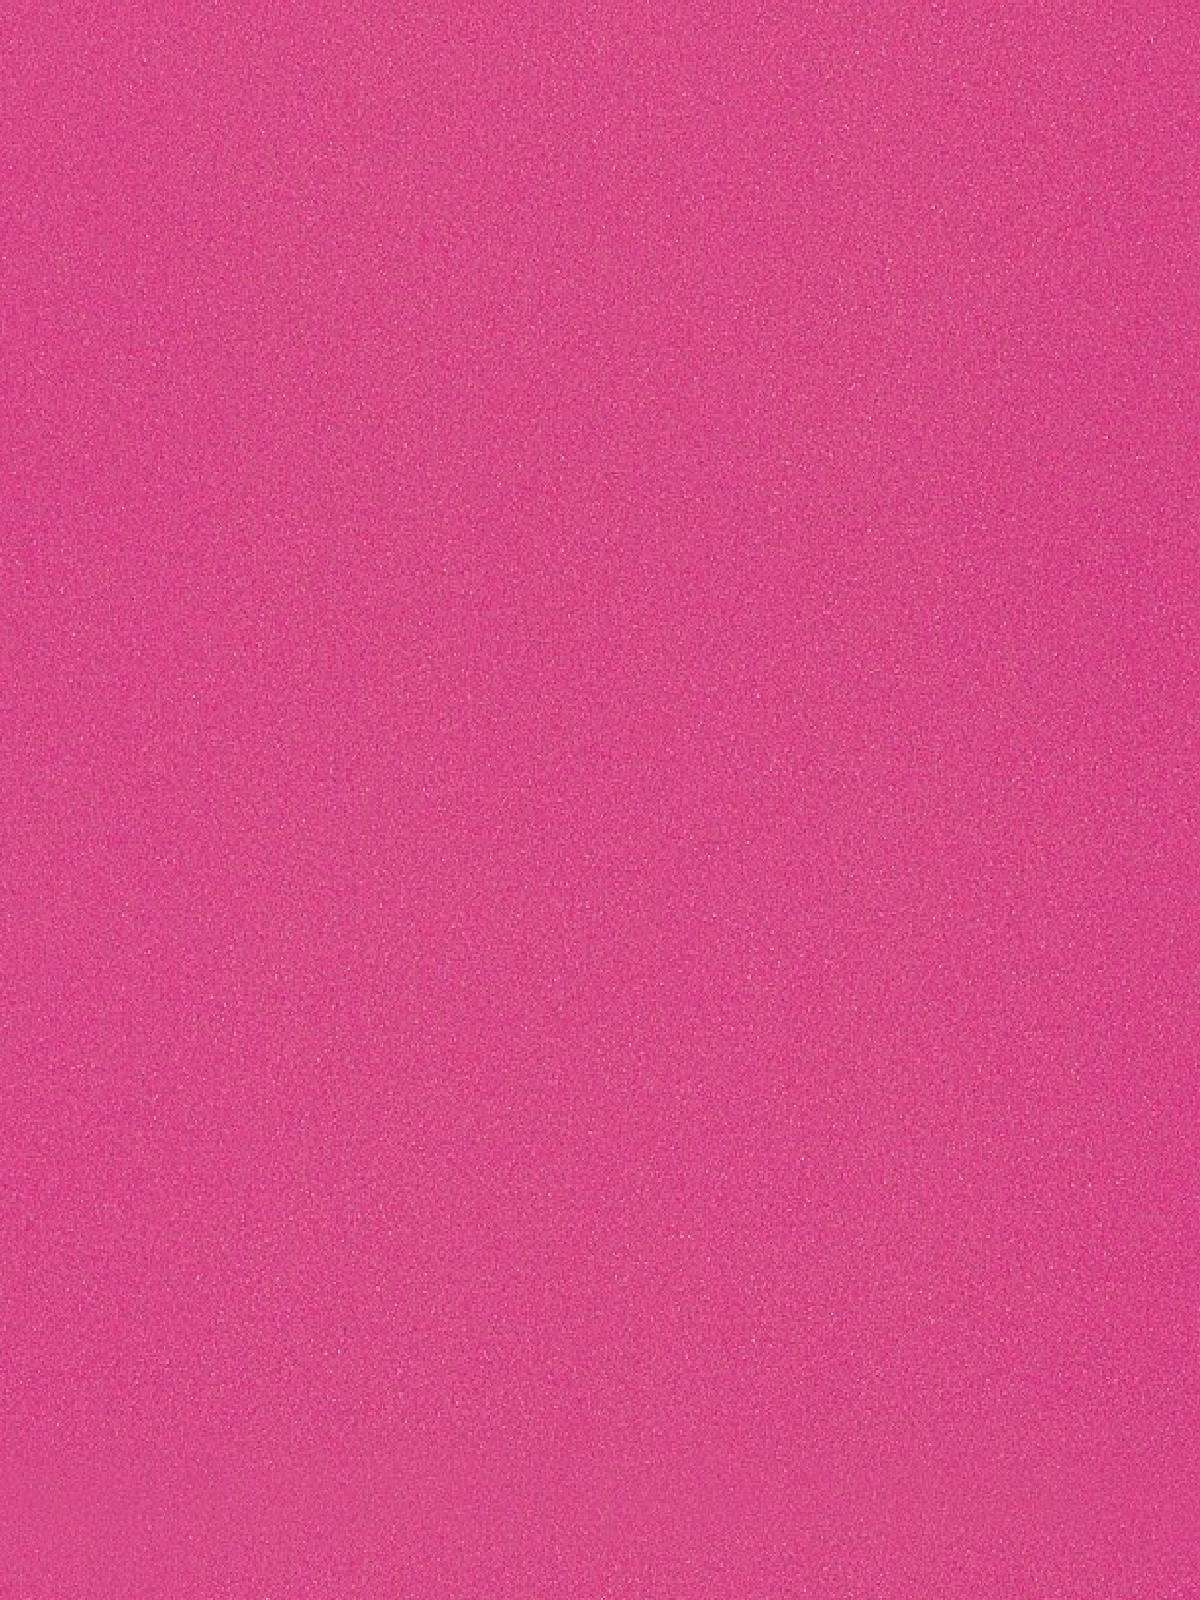 Bright Pink Wallpaper   All Wallpapers New 1200x1600